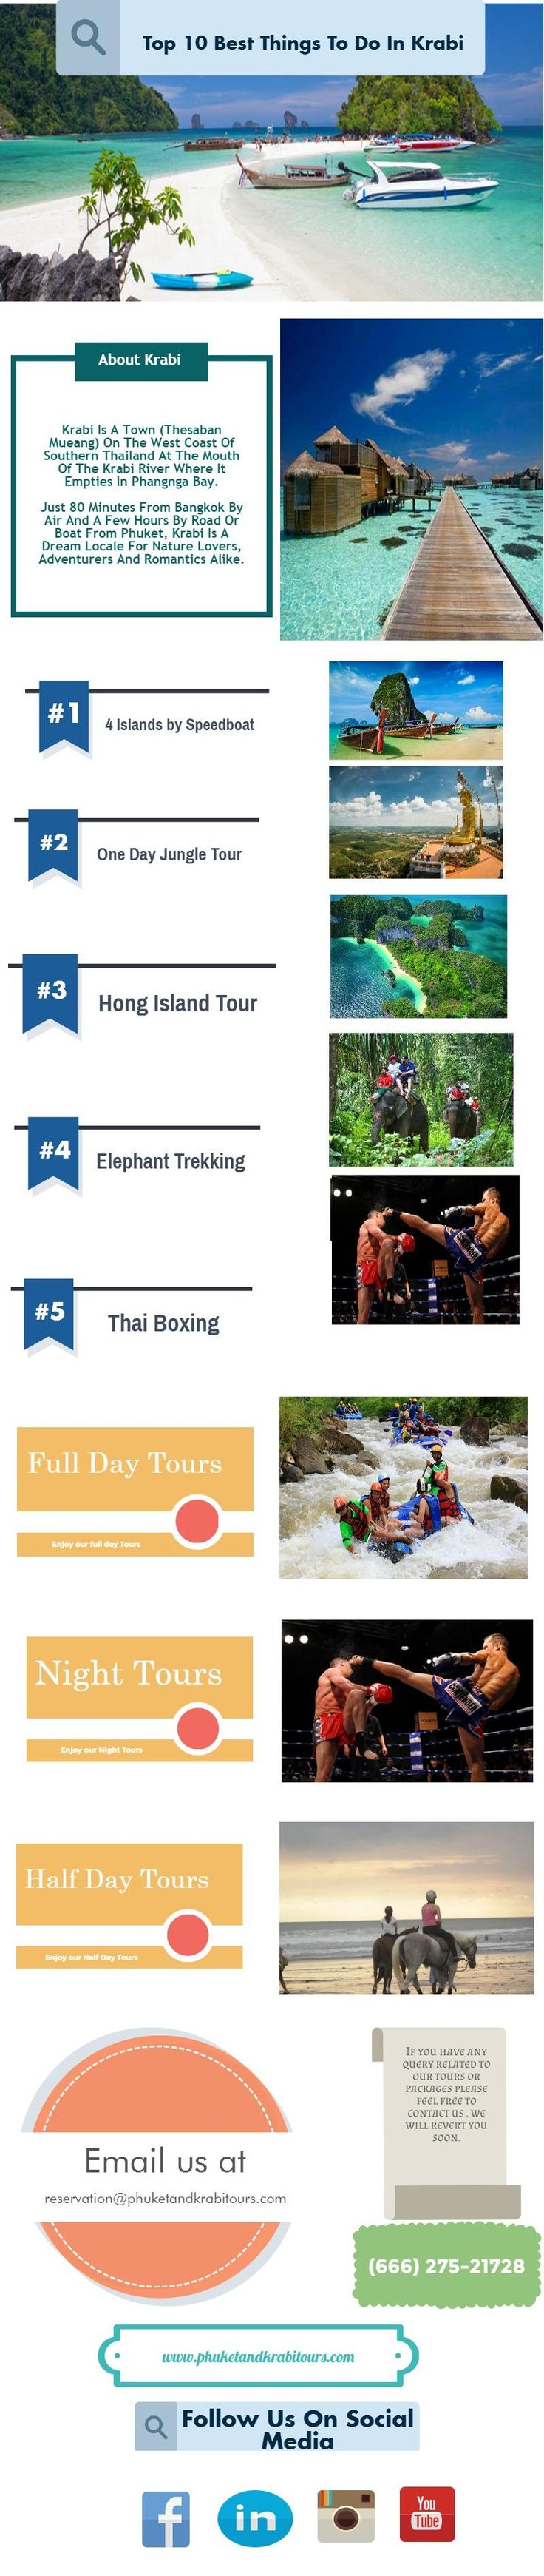 Just 80 Minutes From #Bangkok By Air And A Few Hours By Road Or Boat From #Phuket, #Krabi Is A Dream Locale For Nature Lovers, Adventurers And Romantics Alike. Listed Below Are The Top #KrabiTours.